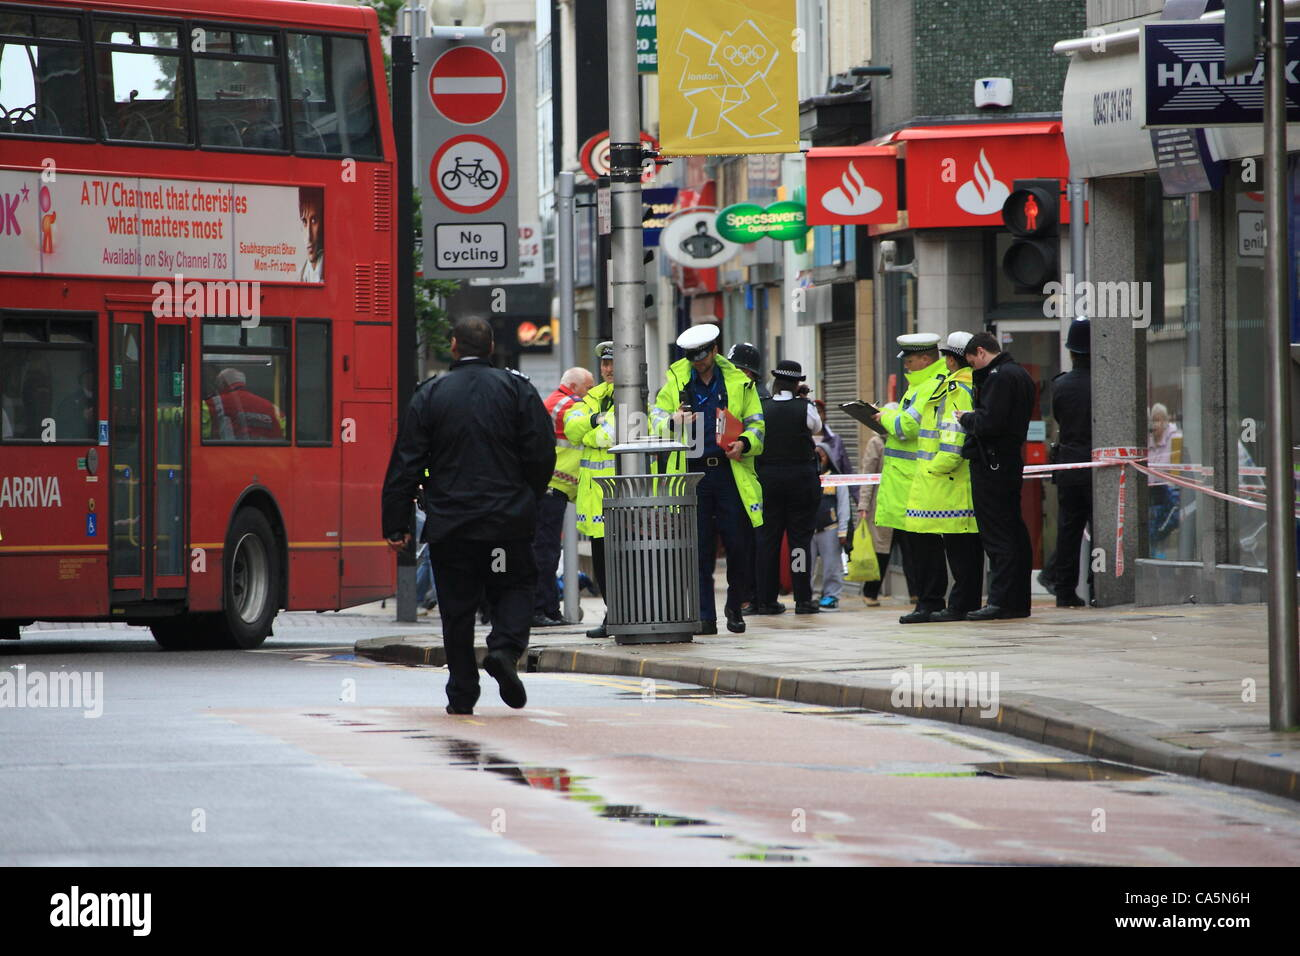 b2f828955c Tuesday 12th June 2012 Air Ambulance called to scene of accident in Ilford  Town Centre. Credit  HOT SHOTS   Alamy Live News